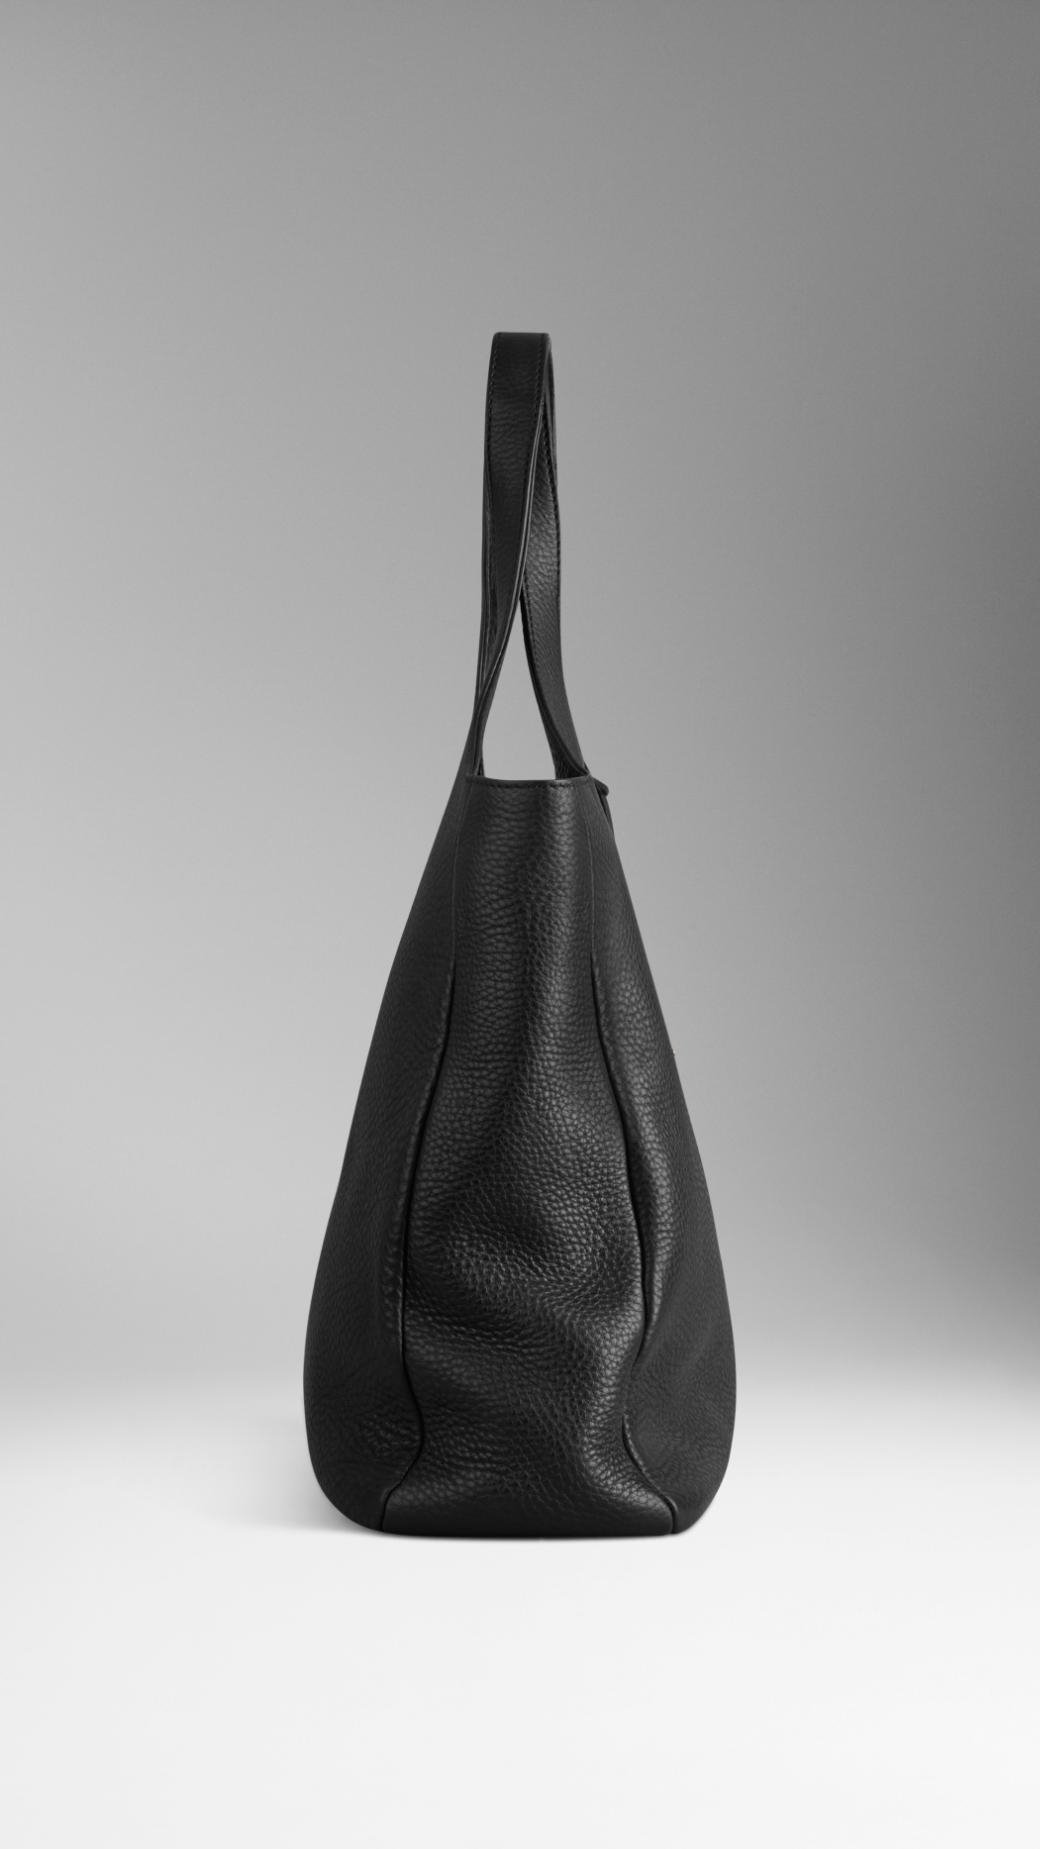 Lyst - Burberry Grainy Leather Shopper in Black e3faf4bd0913a